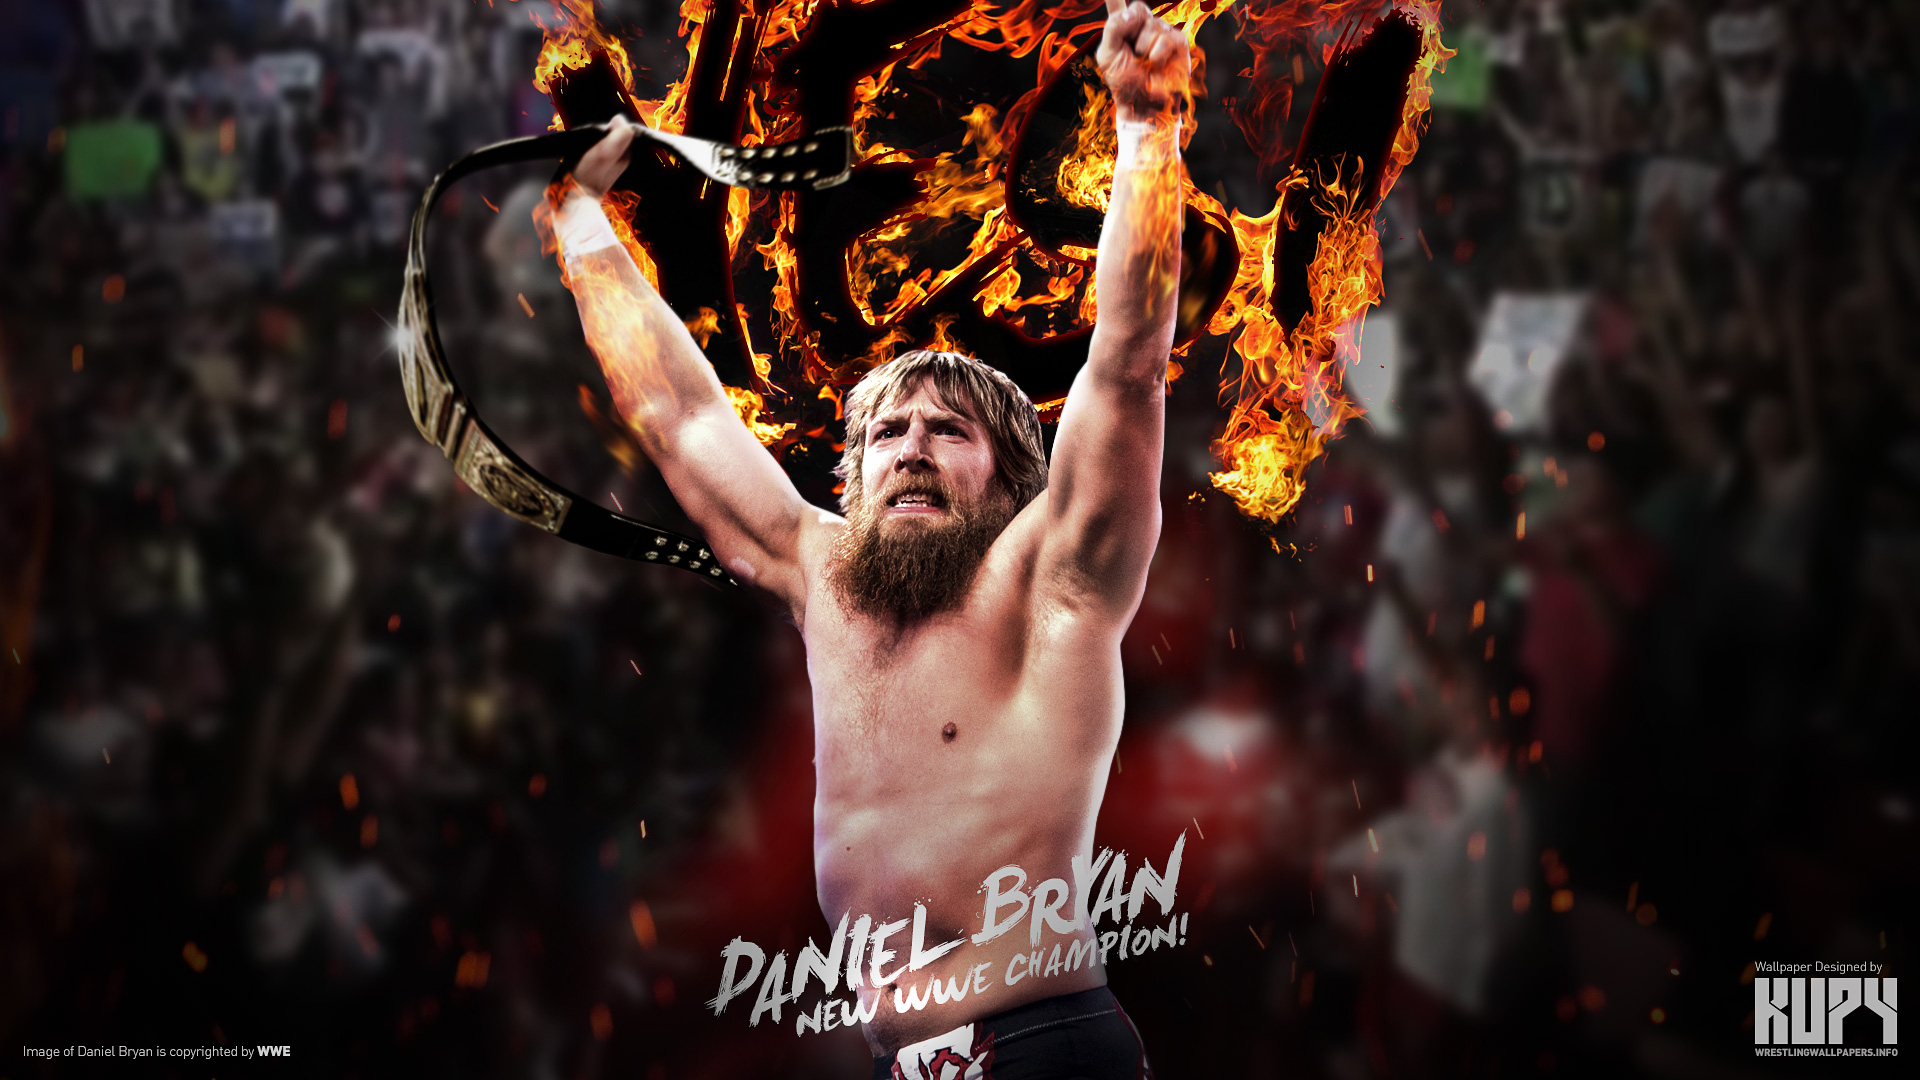 Kupywrestlingwallpapersfo the newest wrestling wallpapers on wwe champion daniel bryan wallpaper 19201200 19201080 voltagebd Images